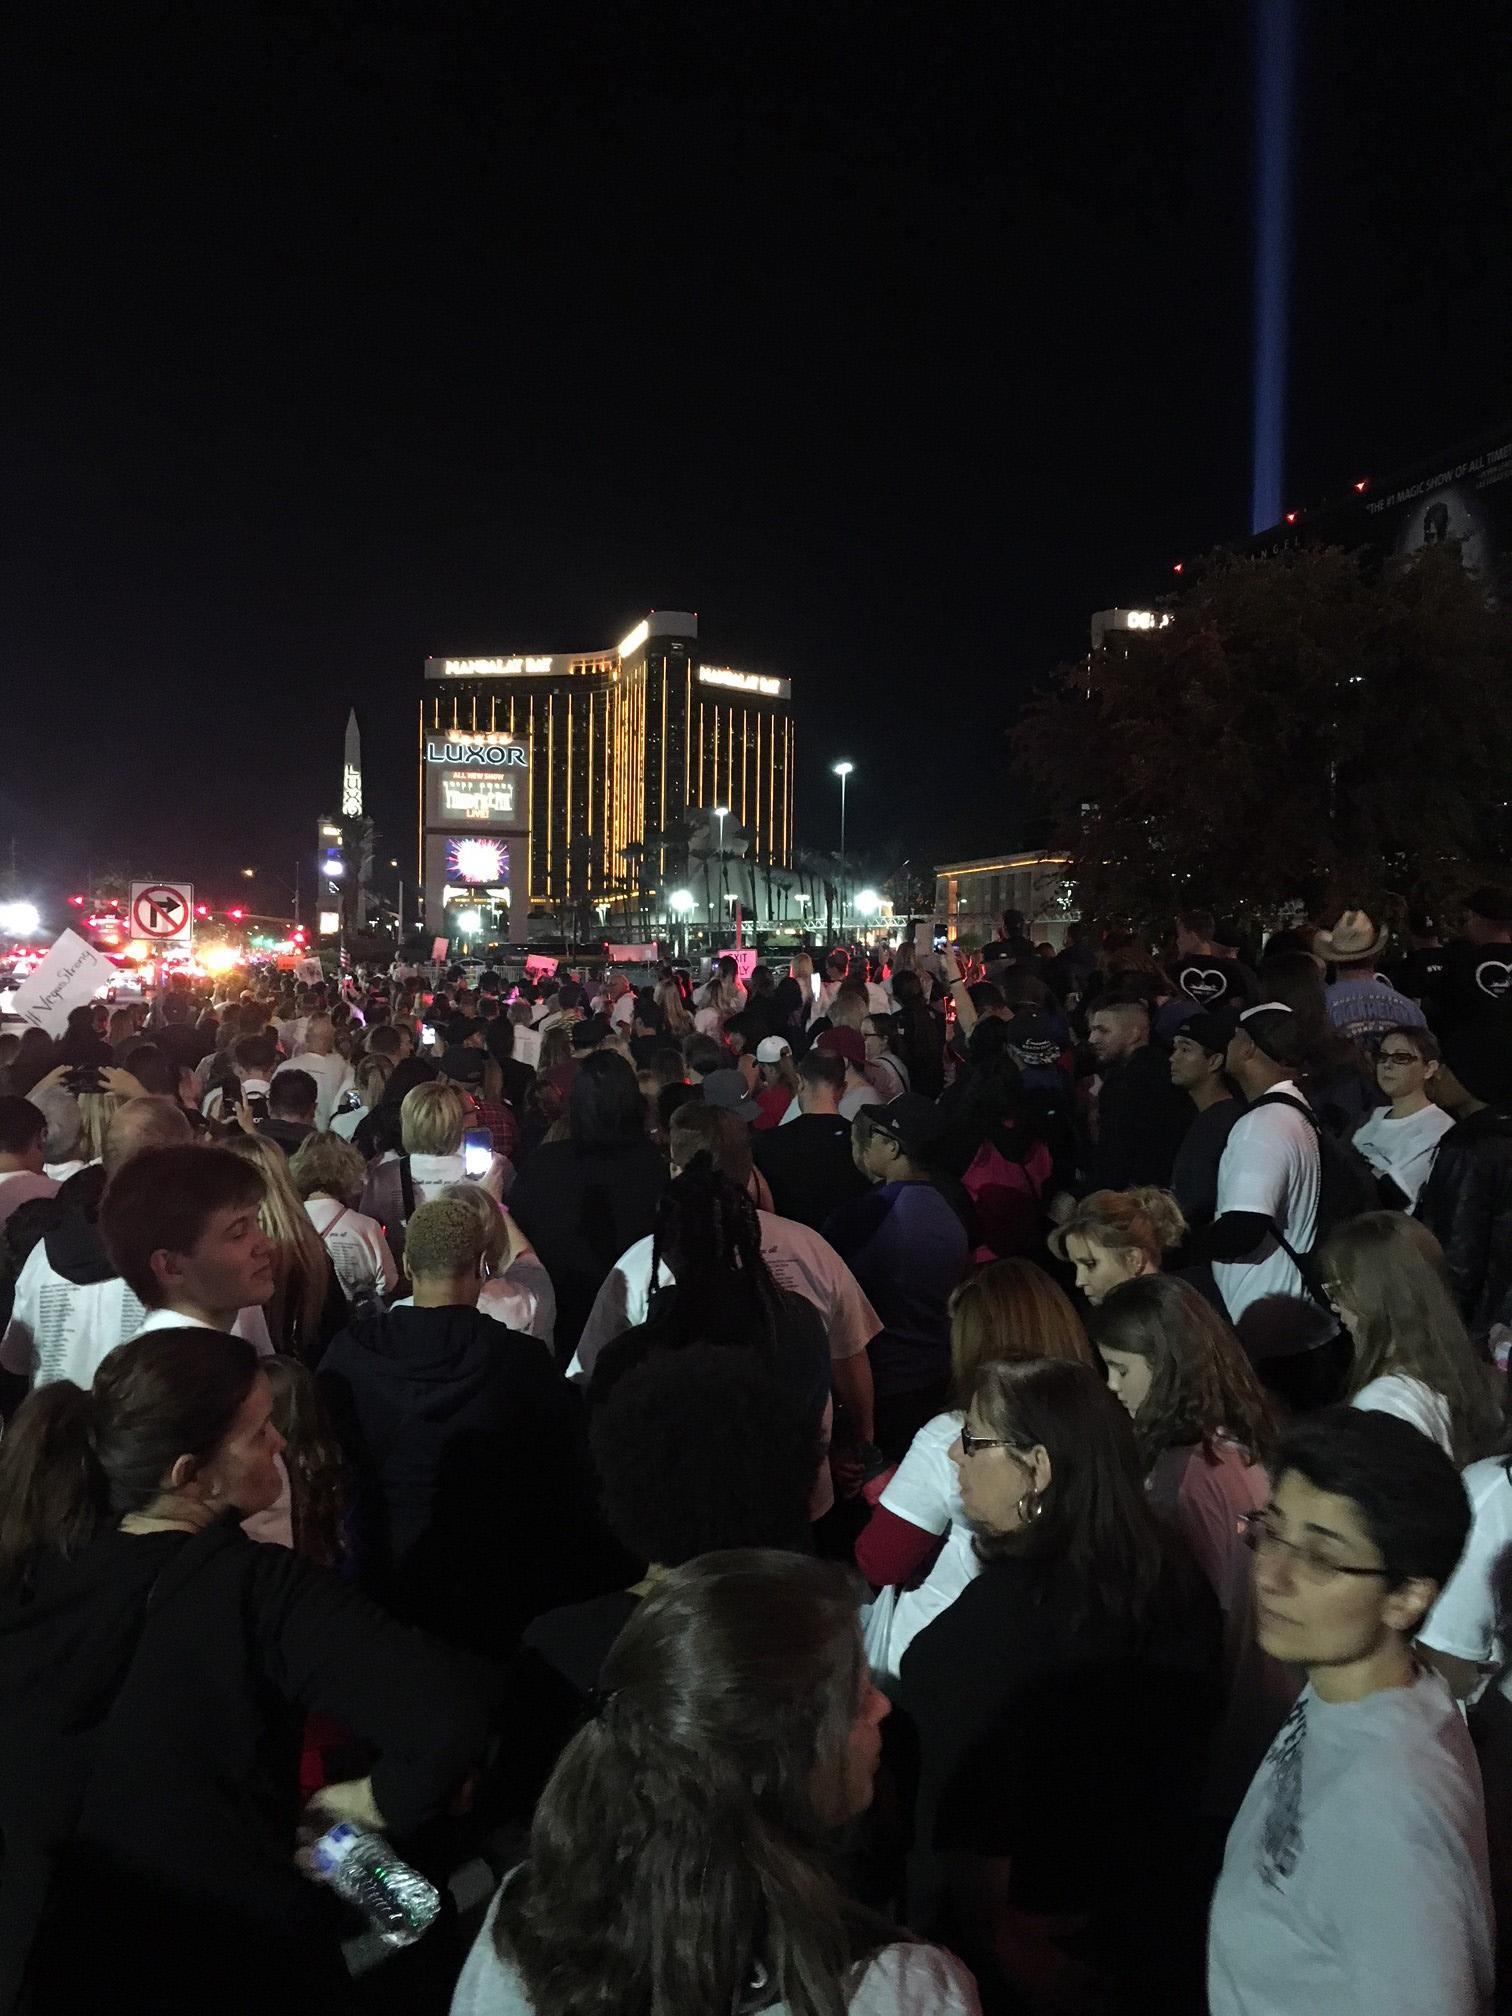 Marchers walk down the Las Vegas Strip on Sunday, October 15, 2017, in honor of the victims of the 1 October shootings. (Photo courtesy of Melissa Novikoff)